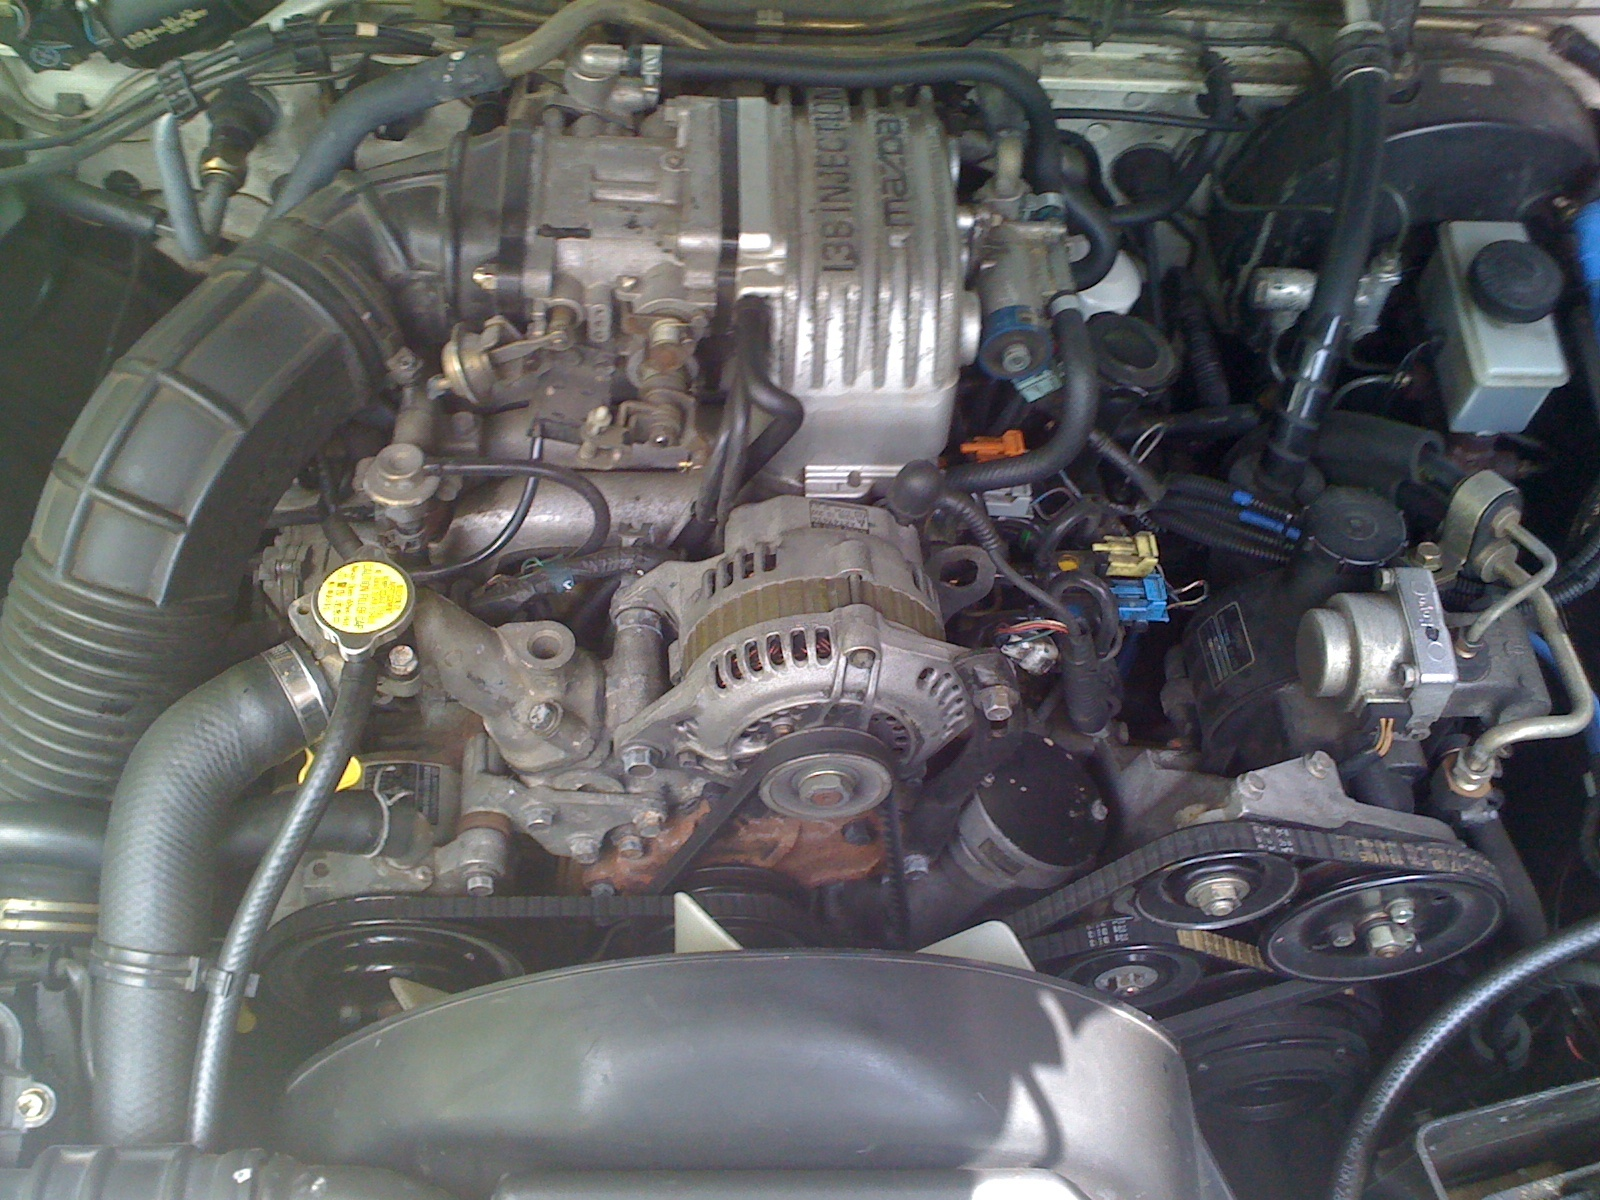 Mazda Rx 7 Questions What Are The Chances That A 1988 1987 Engine Diagram 1 People Found This Helpful